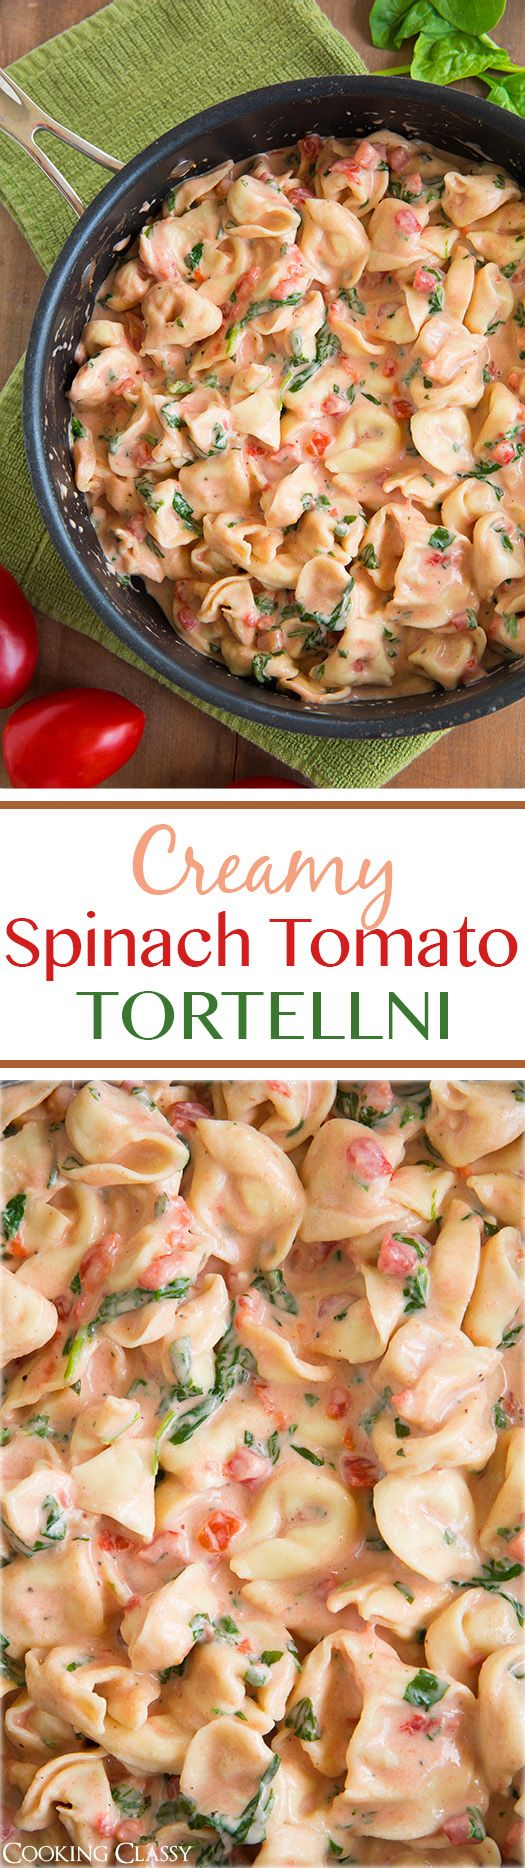 Creamy Spinach Tomato Tortellini - this tastes amazing and it's so easy to make!